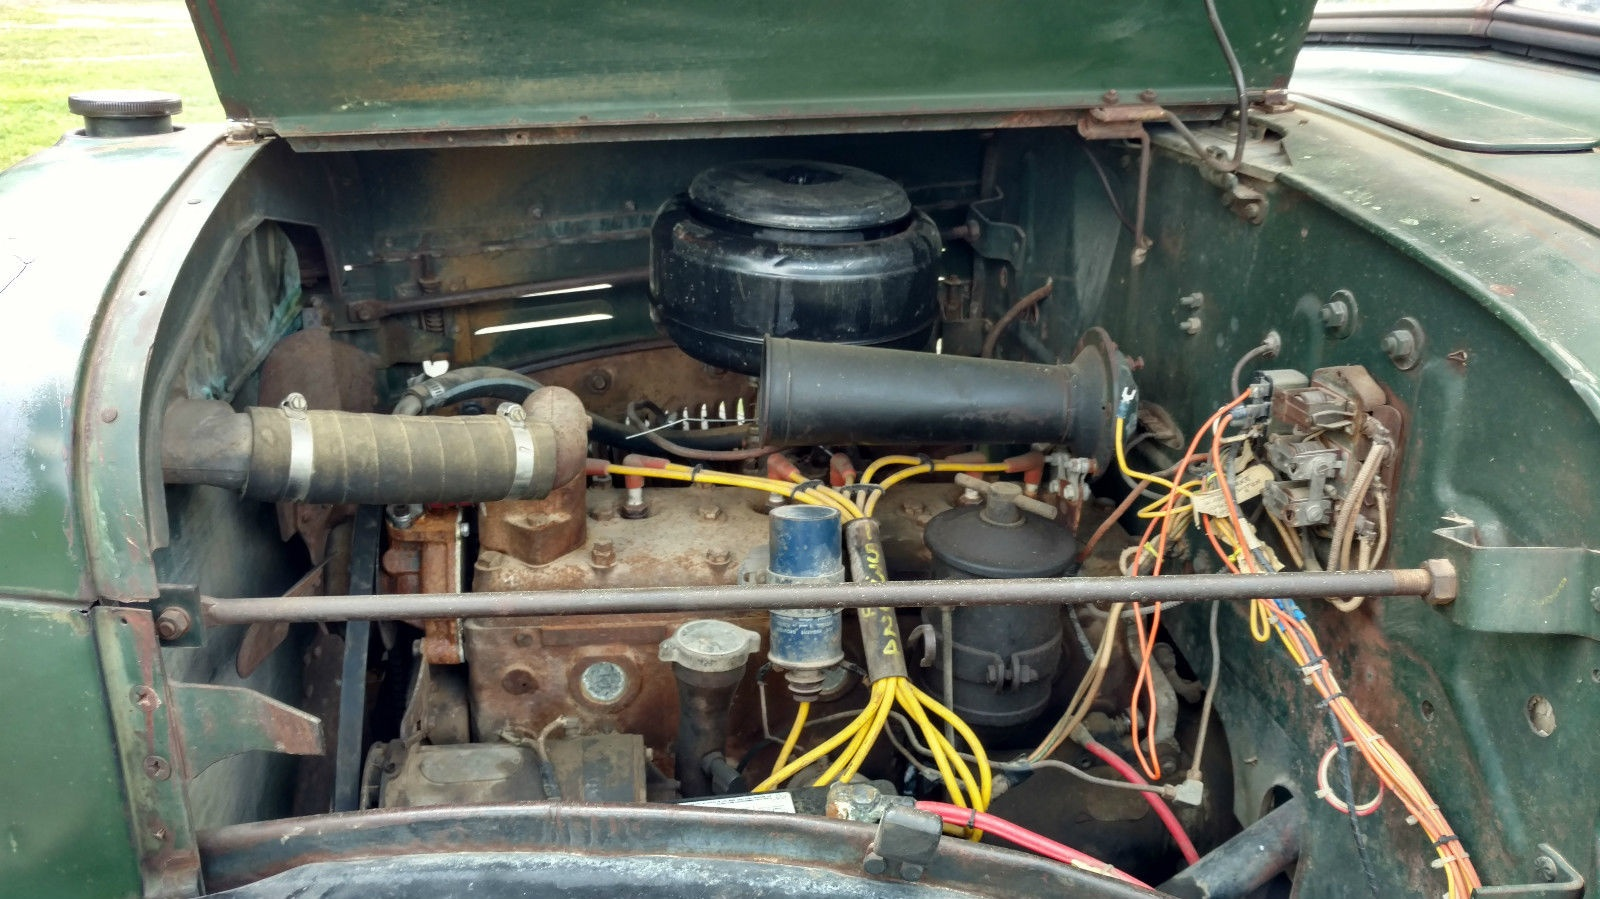 Chains Not Included 1949 Dodge Power Wagon This 230 Cubic Inch Flathead Six Runs Nice According To The Seller And It Should Have Had Around 95 Hp These Engines Were Reliable Easy Fix